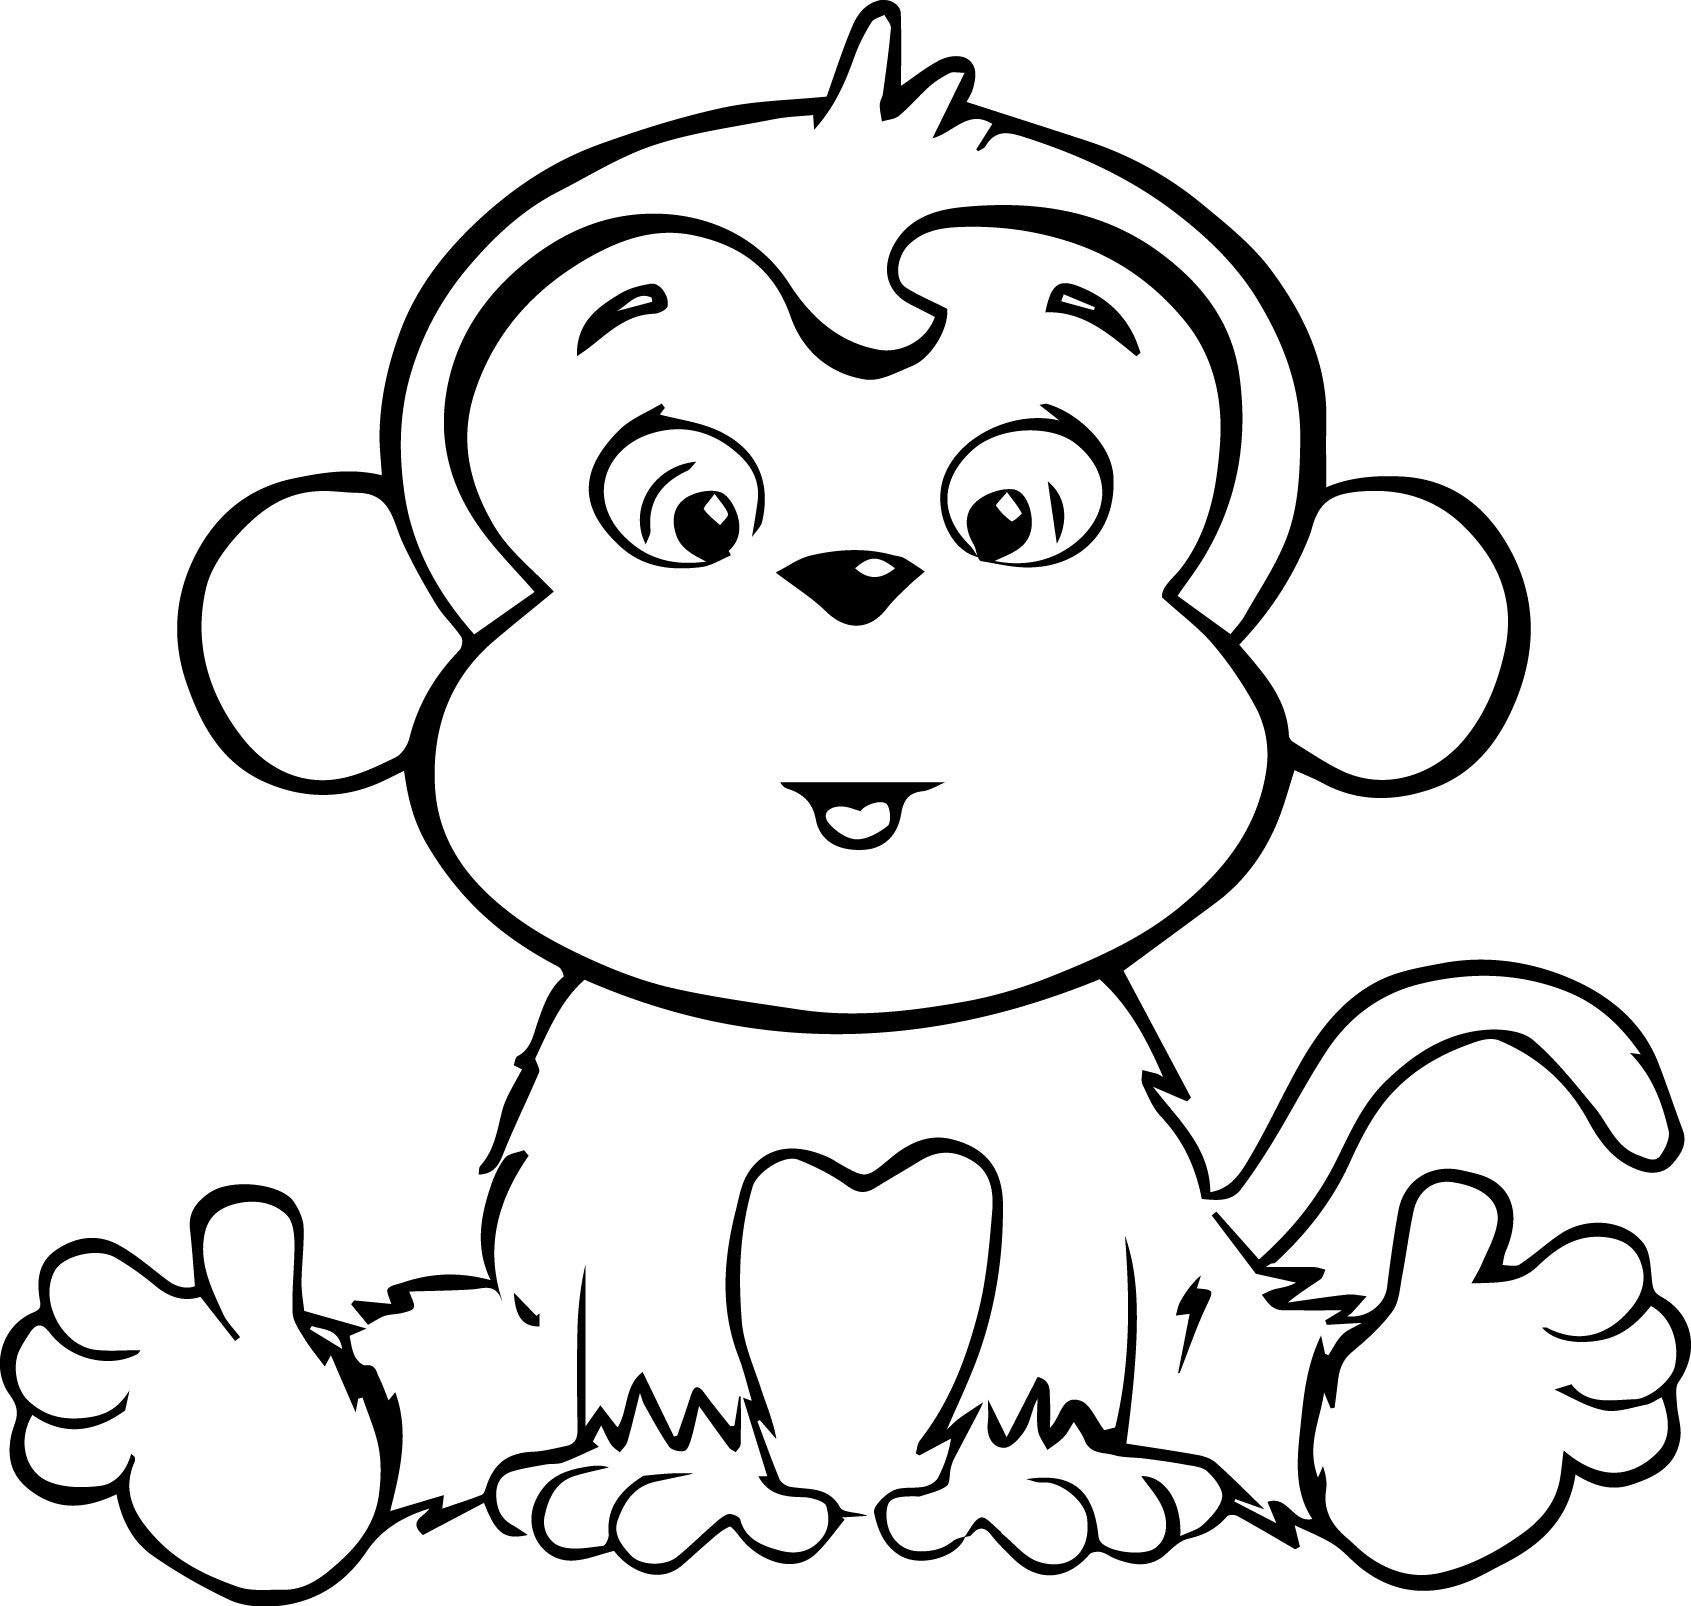 colouring pictures of monkeys cartoon coloring pages wecoloringpagecom of colouring monkeys pictures